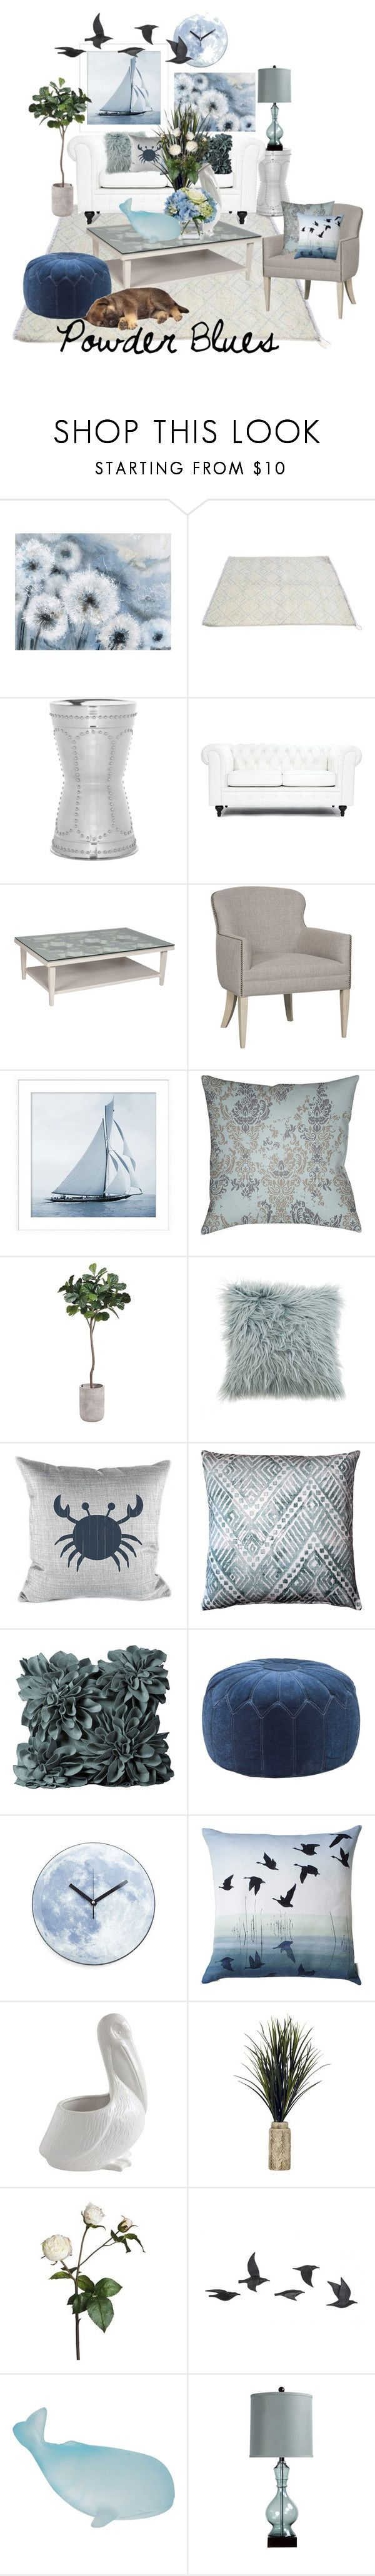 """""""Powder Blues"""" by mia-christine ❤ liked on Polyvore featuring interior, interiors, interior design, home, home decor, interior decorating, Safavieh, Pottery Barn, Décor 140 and Pillow Decor"""